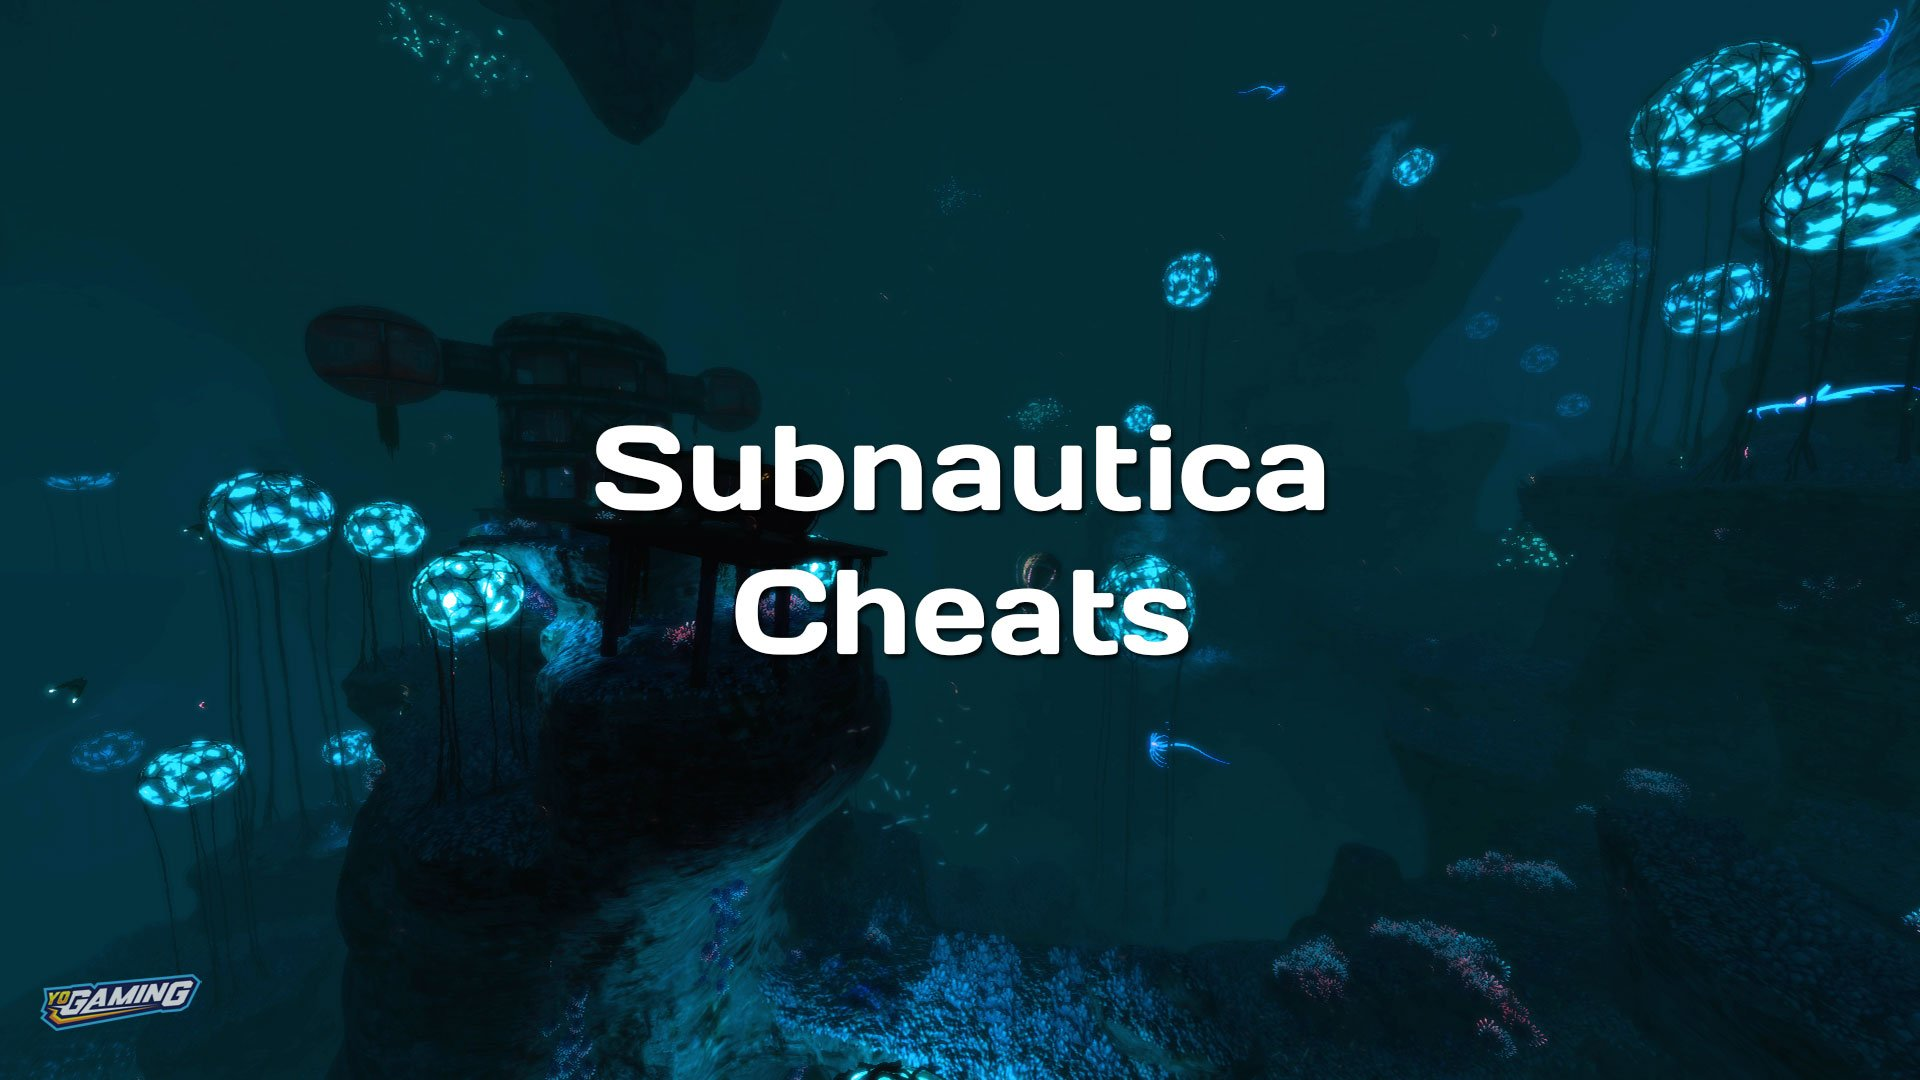 <b>Subnautica Cheats</b>, <b>Cheat Codes</b> &amp; Console Commands for PC Xbox PS4